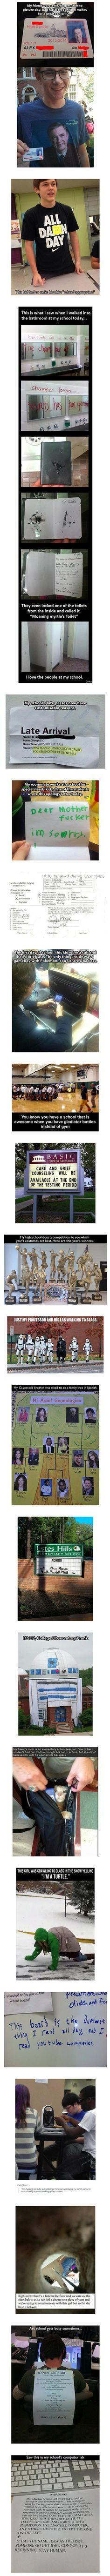 Here are some funny and geeky things that have been spotted at schools.   Why can't my school be more like this!!!!: Giggle, Random Funny, Funny Things, Funny School, Geeky Things, Funny Stuff, Chamber Of Secrets, High Schools